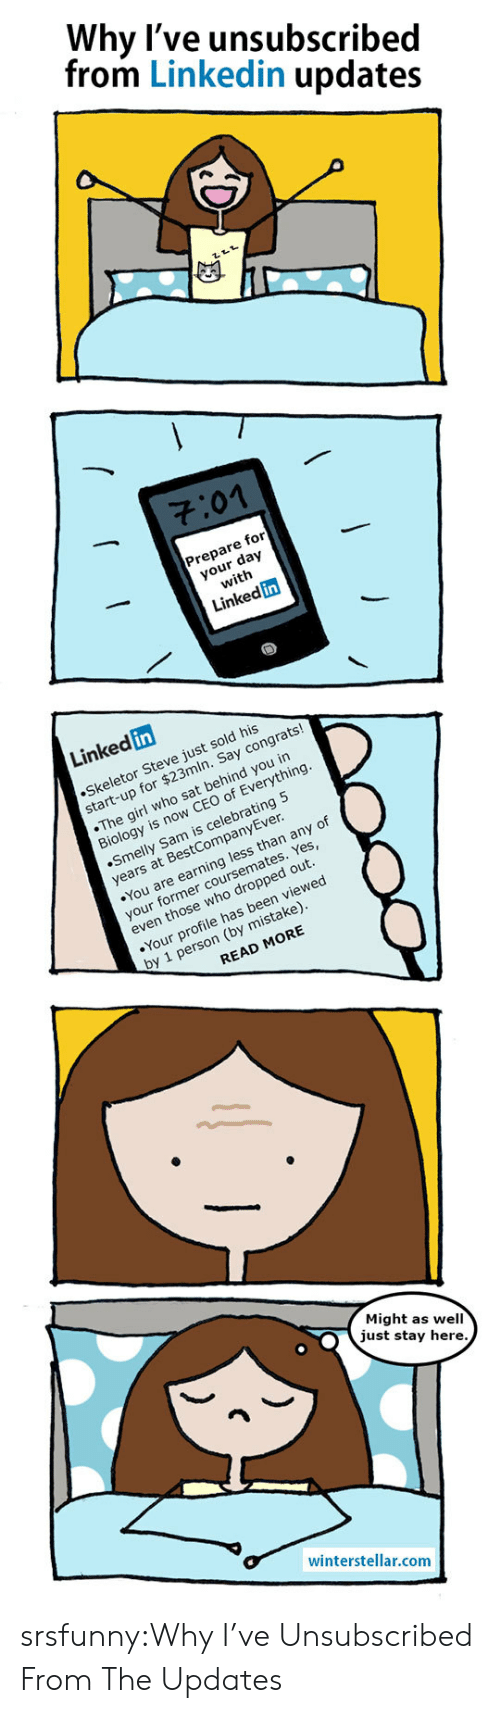 LinkedIn, Tumblr, and Blog: Why l've unsubscribed  from Linkedin updates  701  Prepare for  your day  with  Linked in  Linked in  Skeletor Steve just sold his  start-up for $23mln. Say congrats!  The girl who sat behind you in  Biology is now CEO of Everything  Smelly Sam is celebrating 5  years at BestCompanyEver  You are earning less than any of  your former coursemates. Yes  even those who dropped out  Your profile has been viewed  by 1 person (by mistake)  READ MORE  Might as well  just stay here  winterstellar.comm srsfunny:Why I've Unsubscribed From The Updates